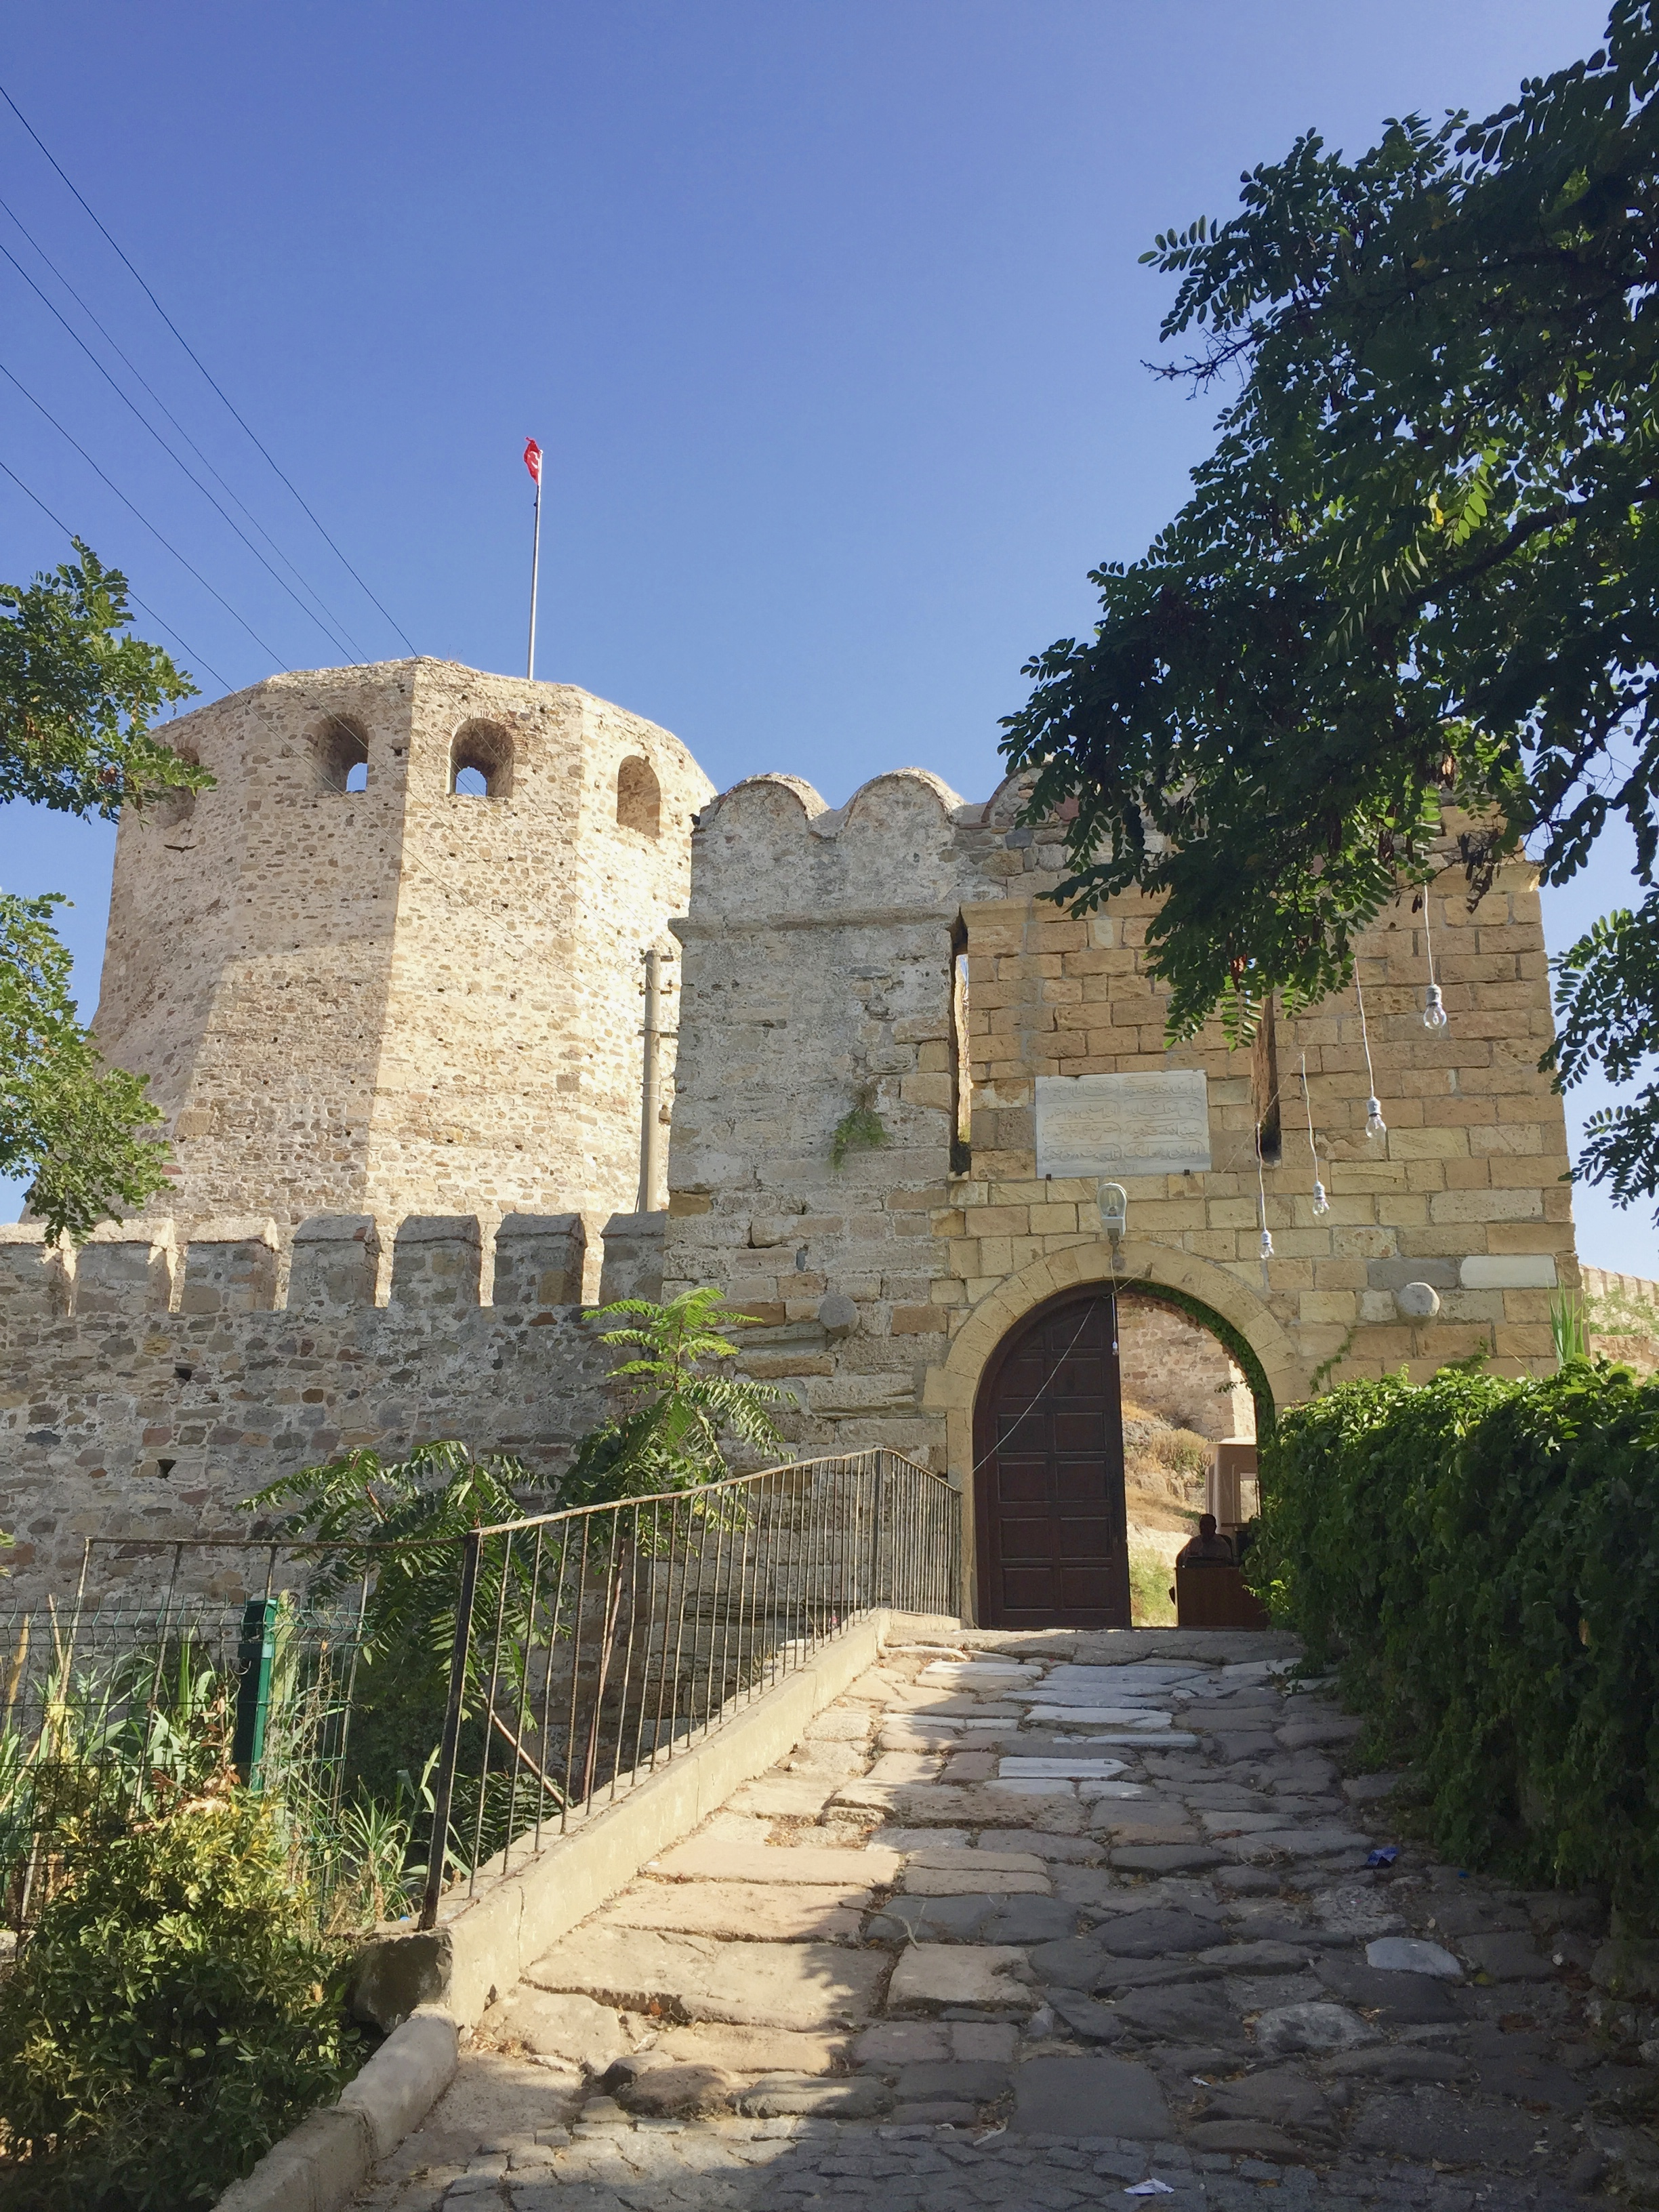 Bozcaada, Turkey has it's own fortress, located by the port on the island.